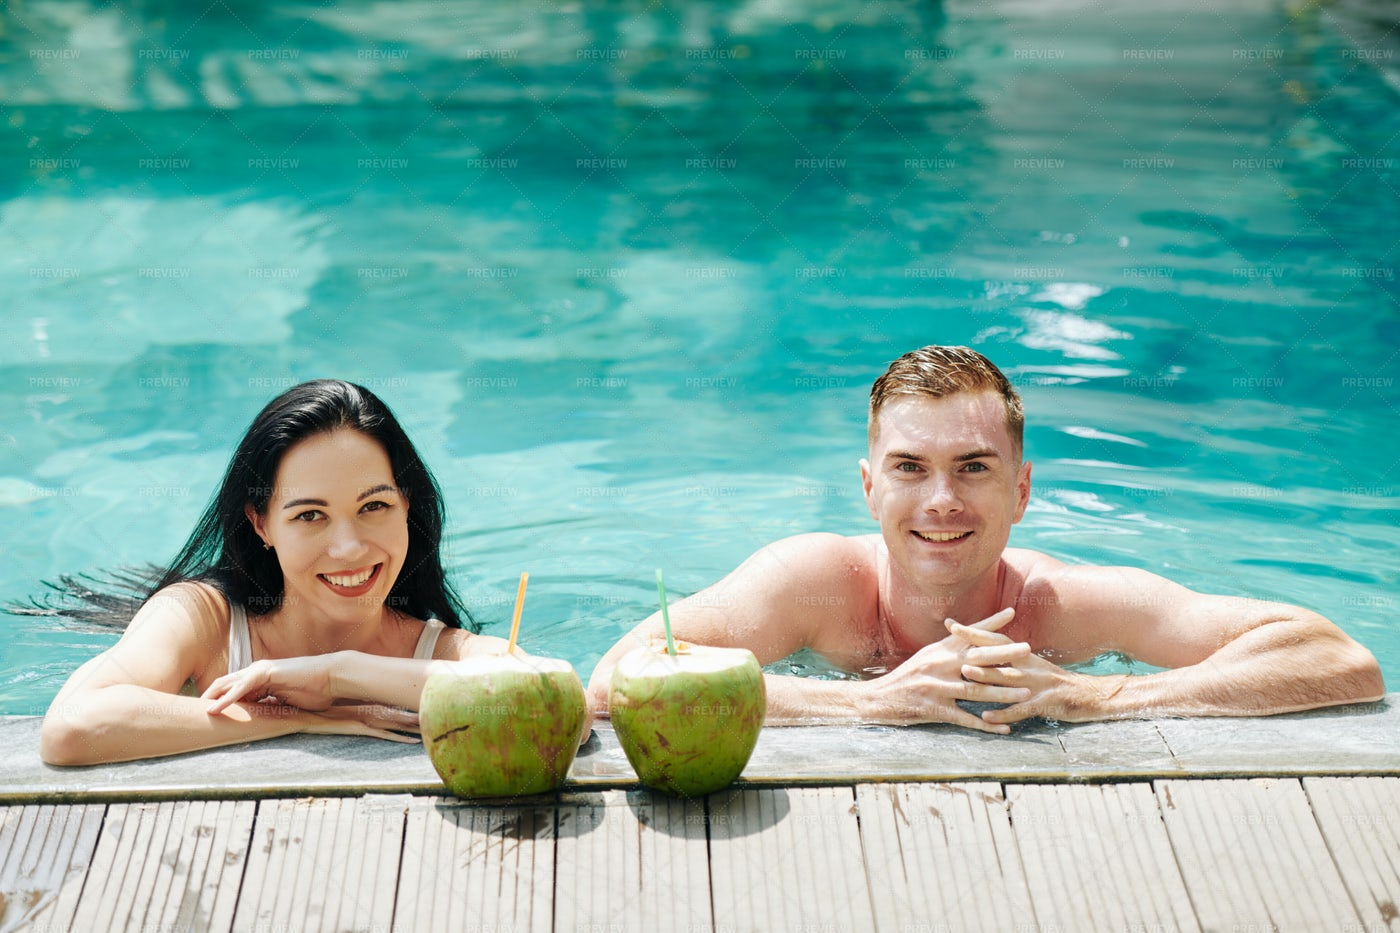 Smiling Couple In Swimming Pool: Stock Photos